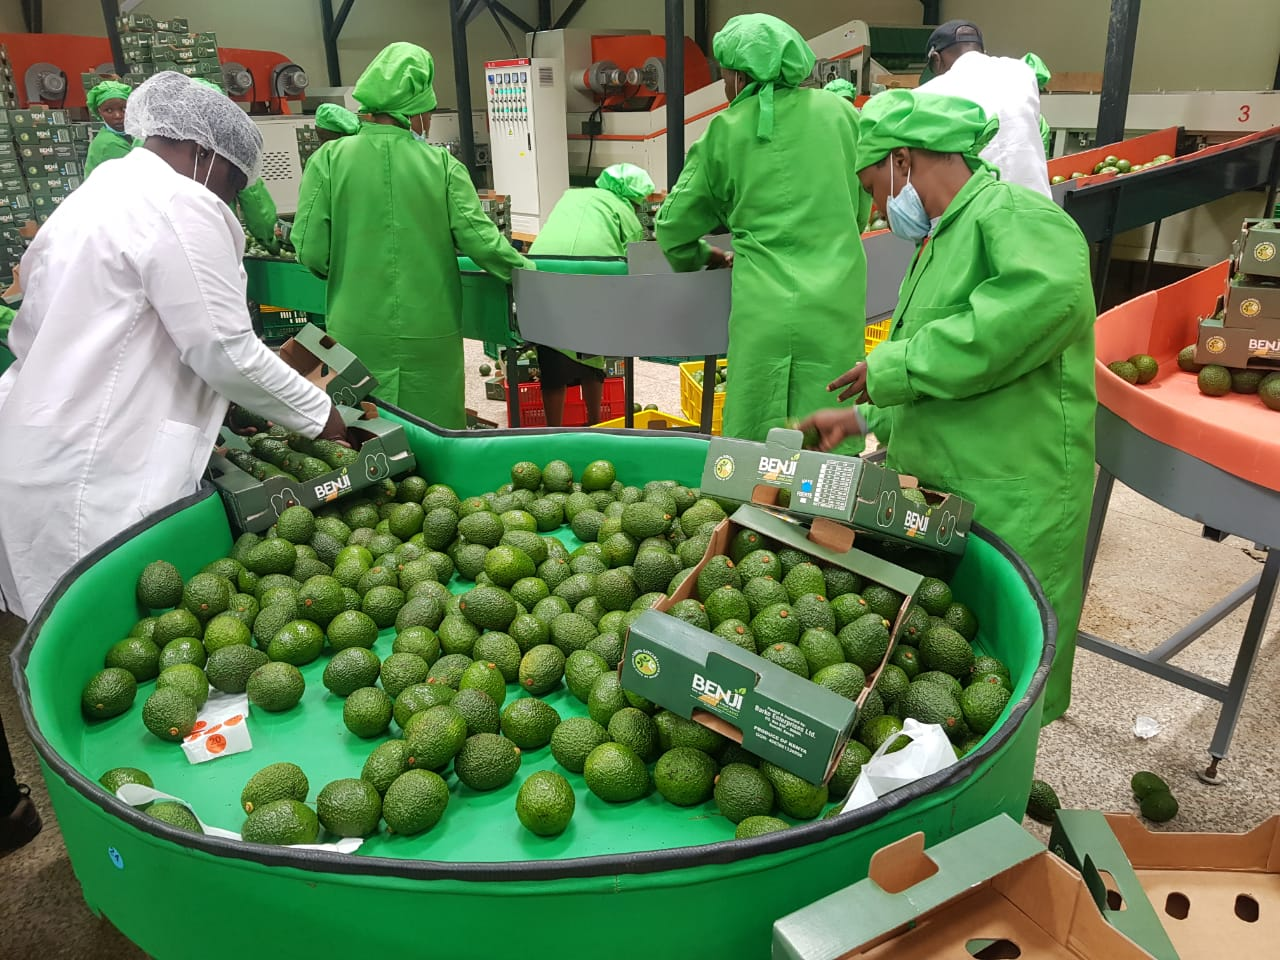 First BENJI Hass avocadoes are being packed in Kenya - Beva Fruits International (BFI)